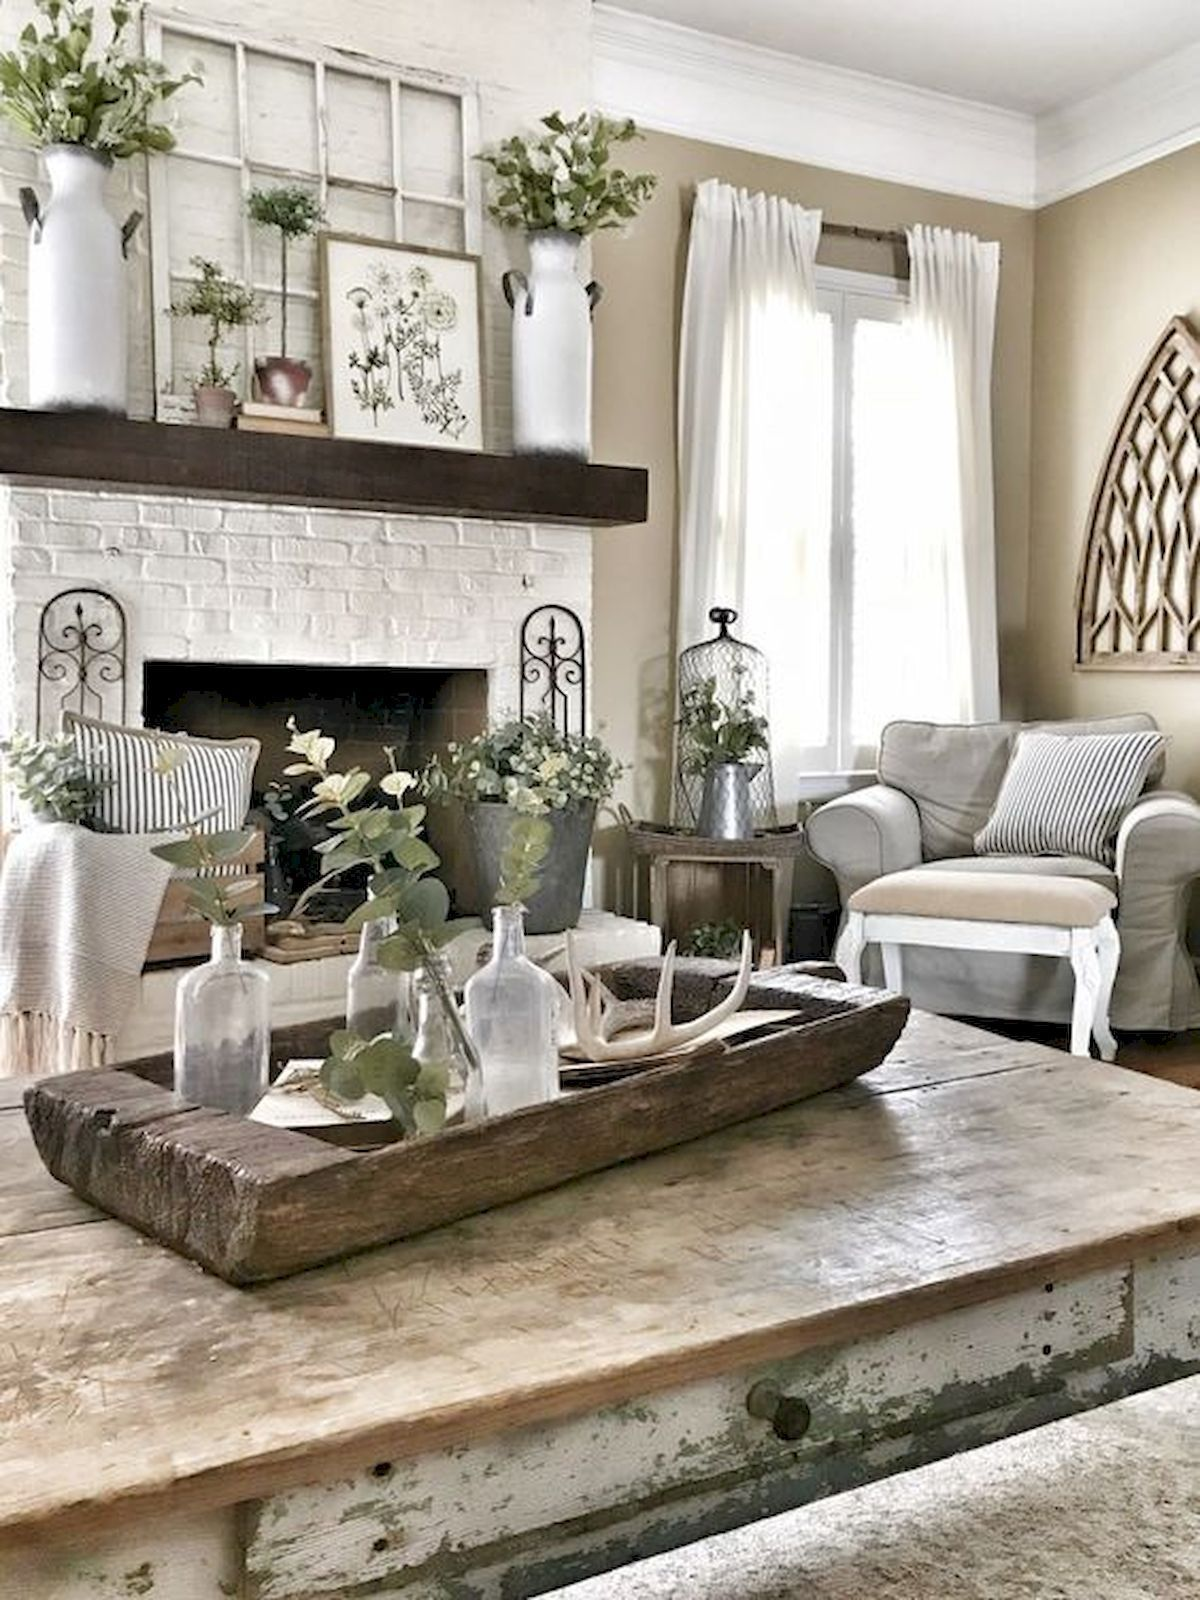 55 decorating ideas for walls in living room 2021 in 2020